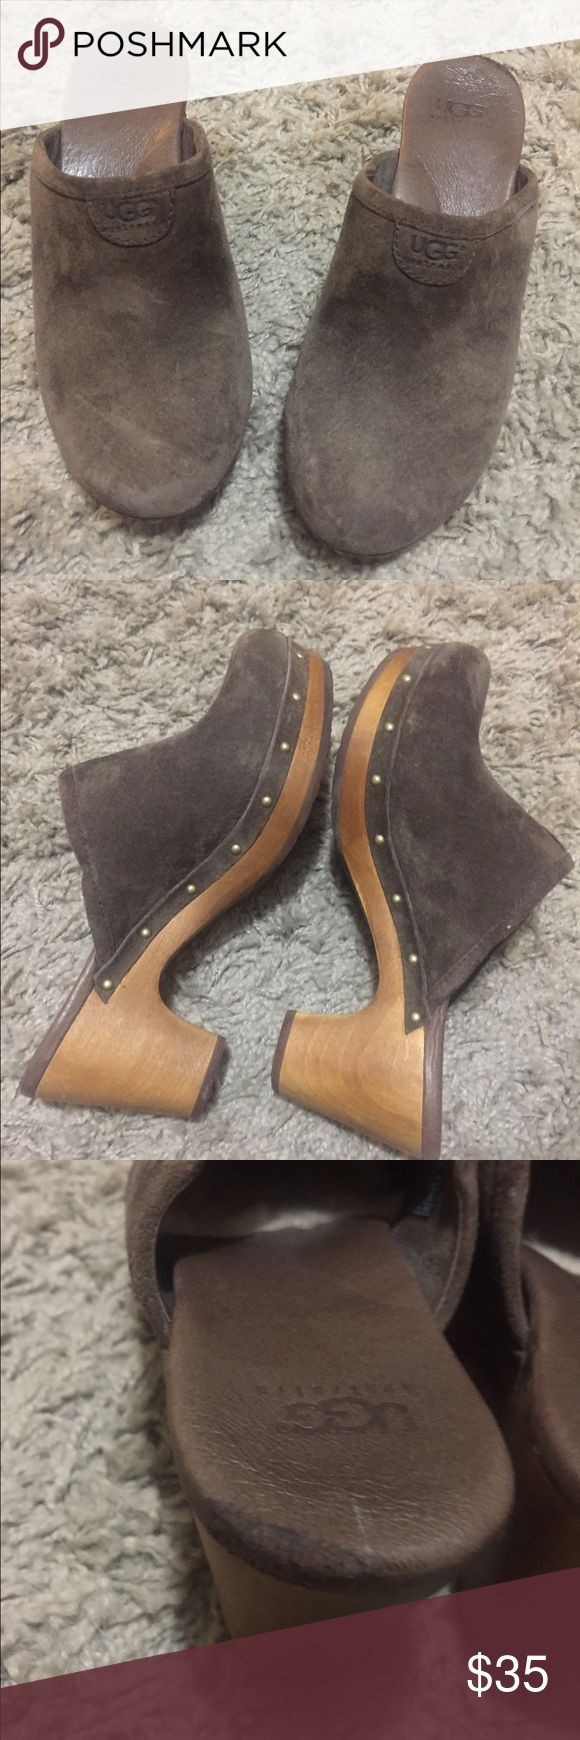 Ugg suede chocolate brown wooden heel clogs Ugg Australia chocolate brown suede clogs. EUC, with extremely minor scratch on heel on one shoe (shown in 3rd photo) this is not noticeable when worn. Wooden block heel, lined with sheep's wool. Size 6. UGG Shoes Mules & Clogs